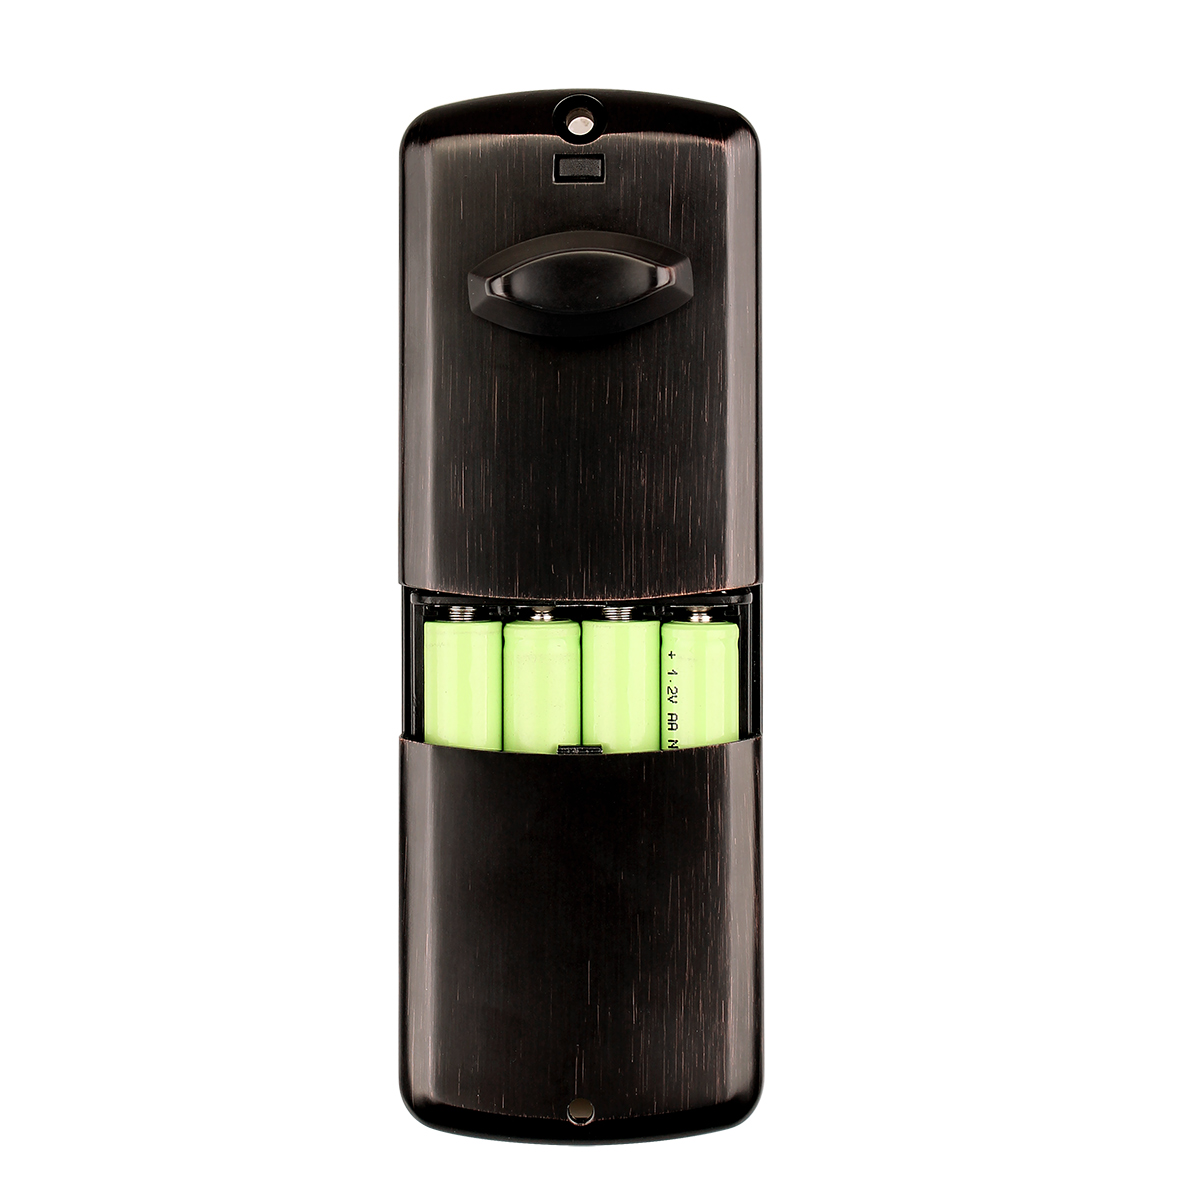 TIVDIO Smart Lock Bluetooth Enabled Keyless Home Entry By Your Smartphone